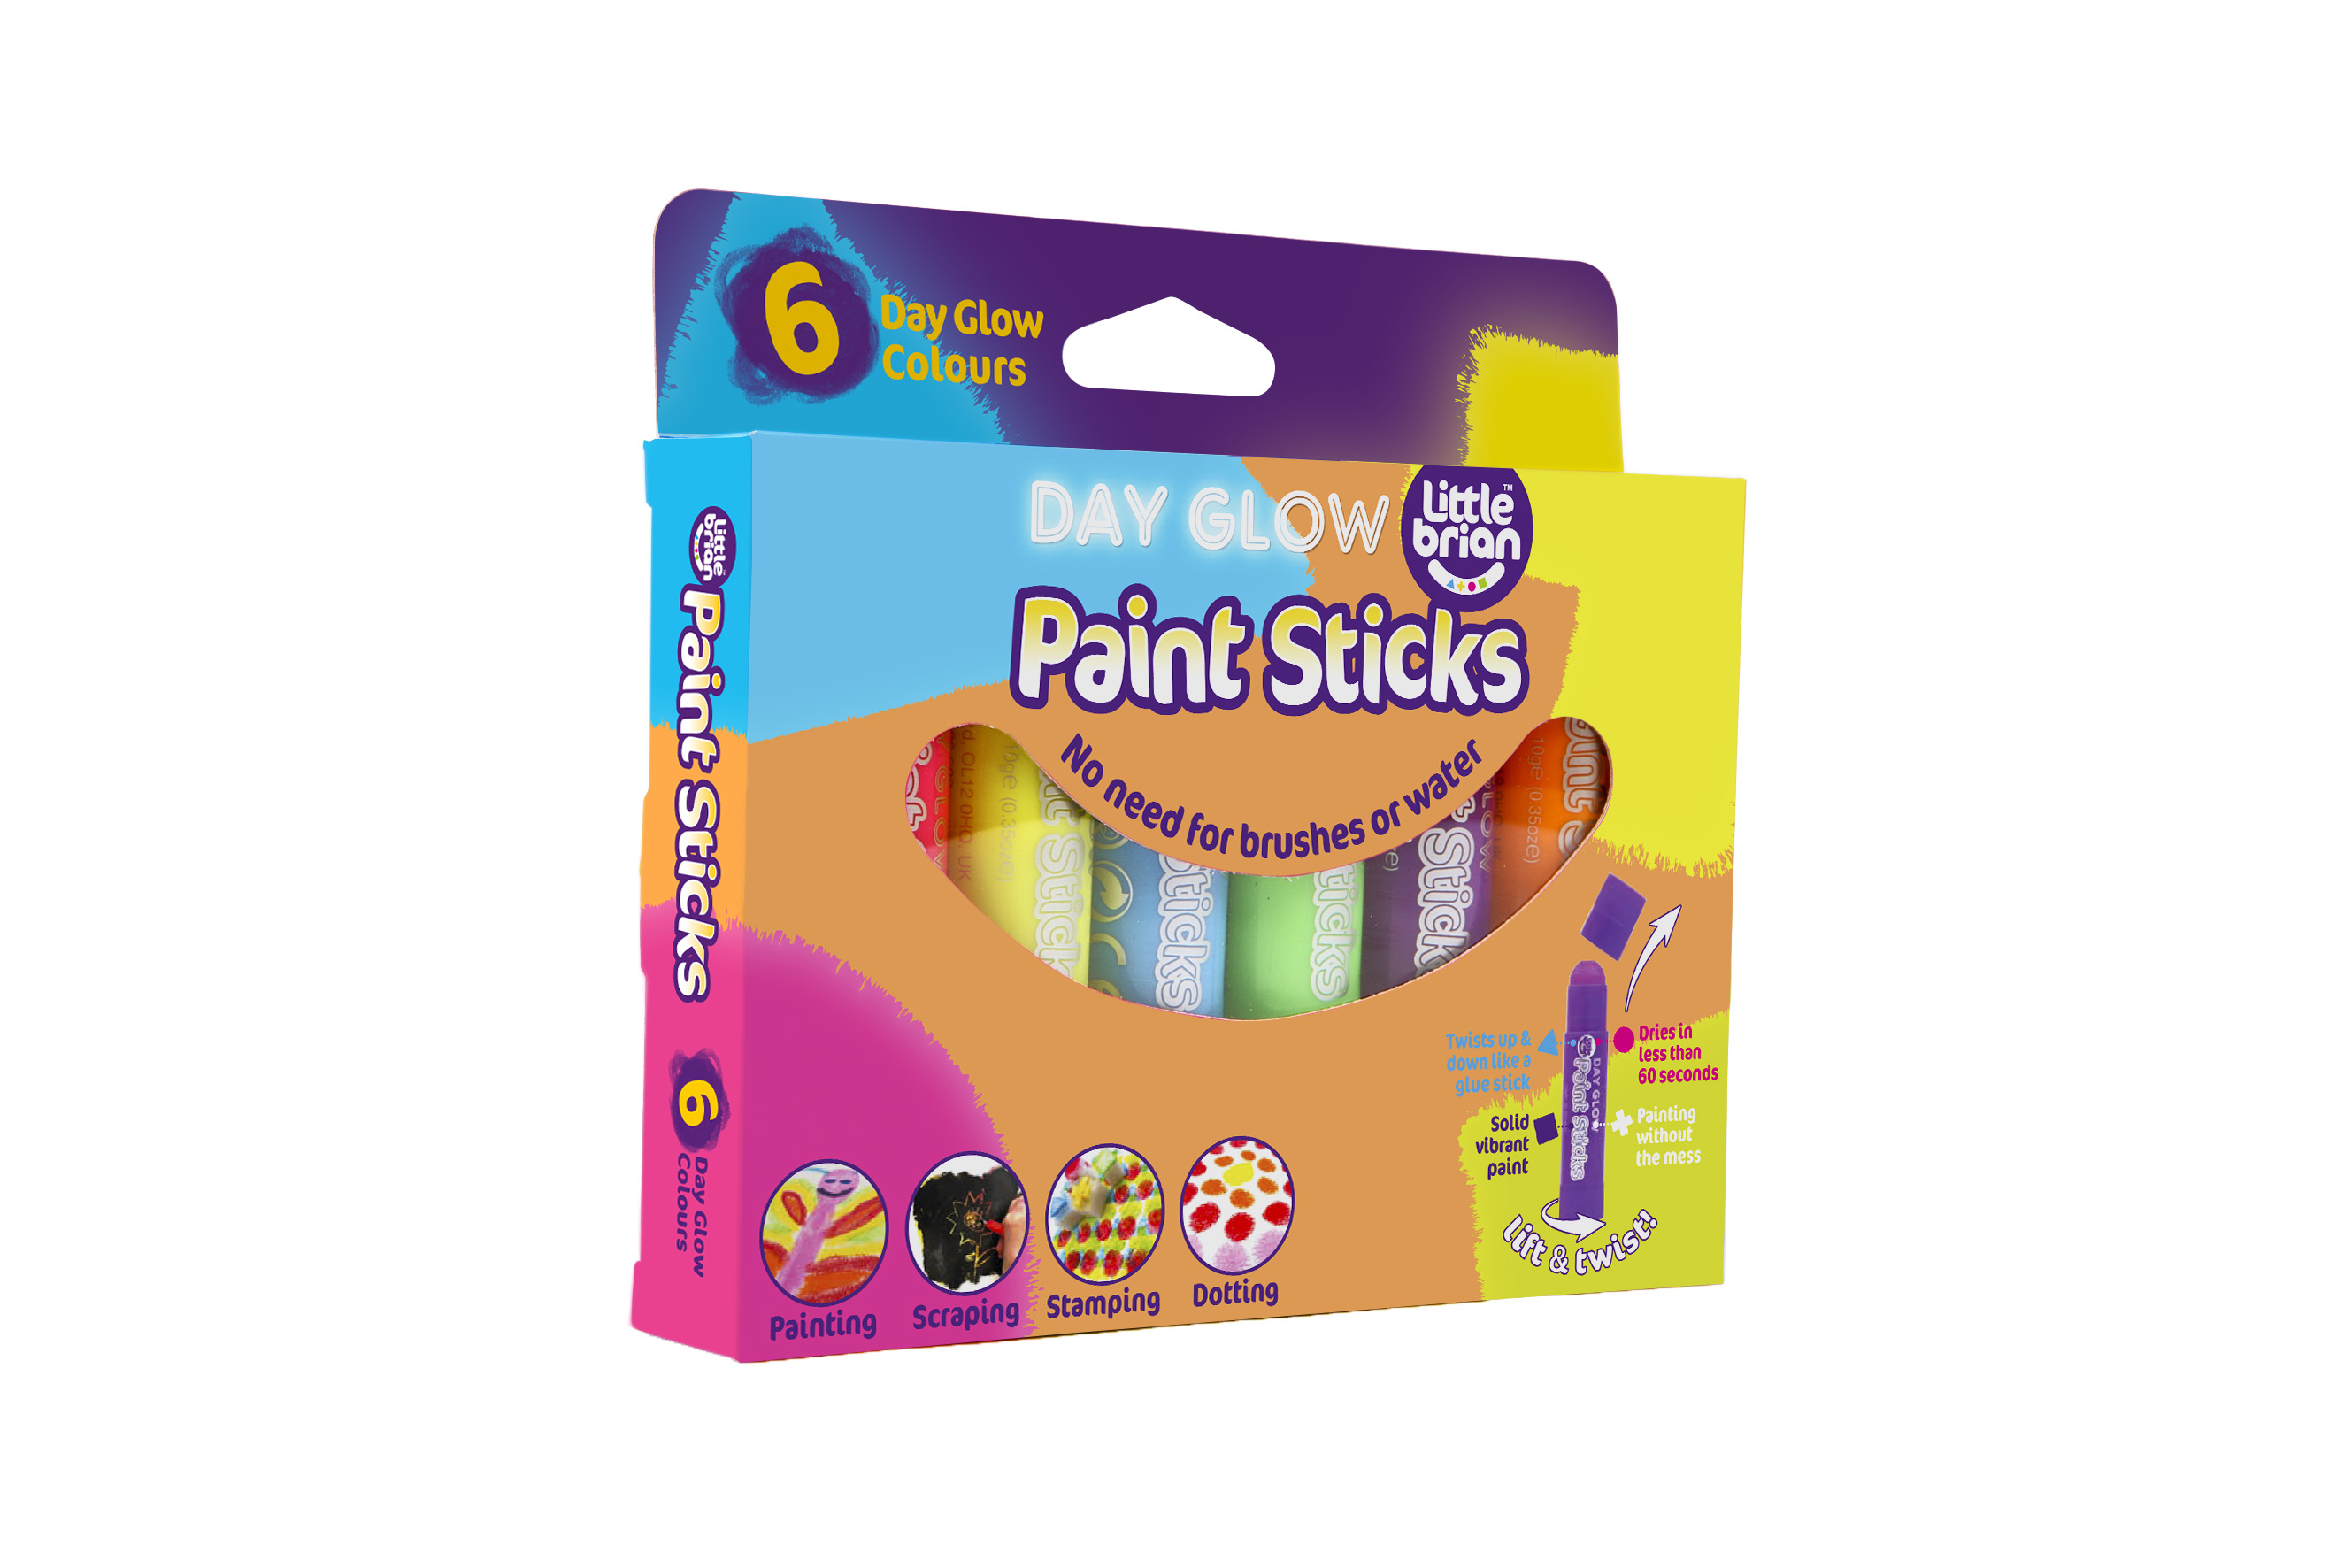 Little Brian Paint Sticks Day Glow 6 Assorted